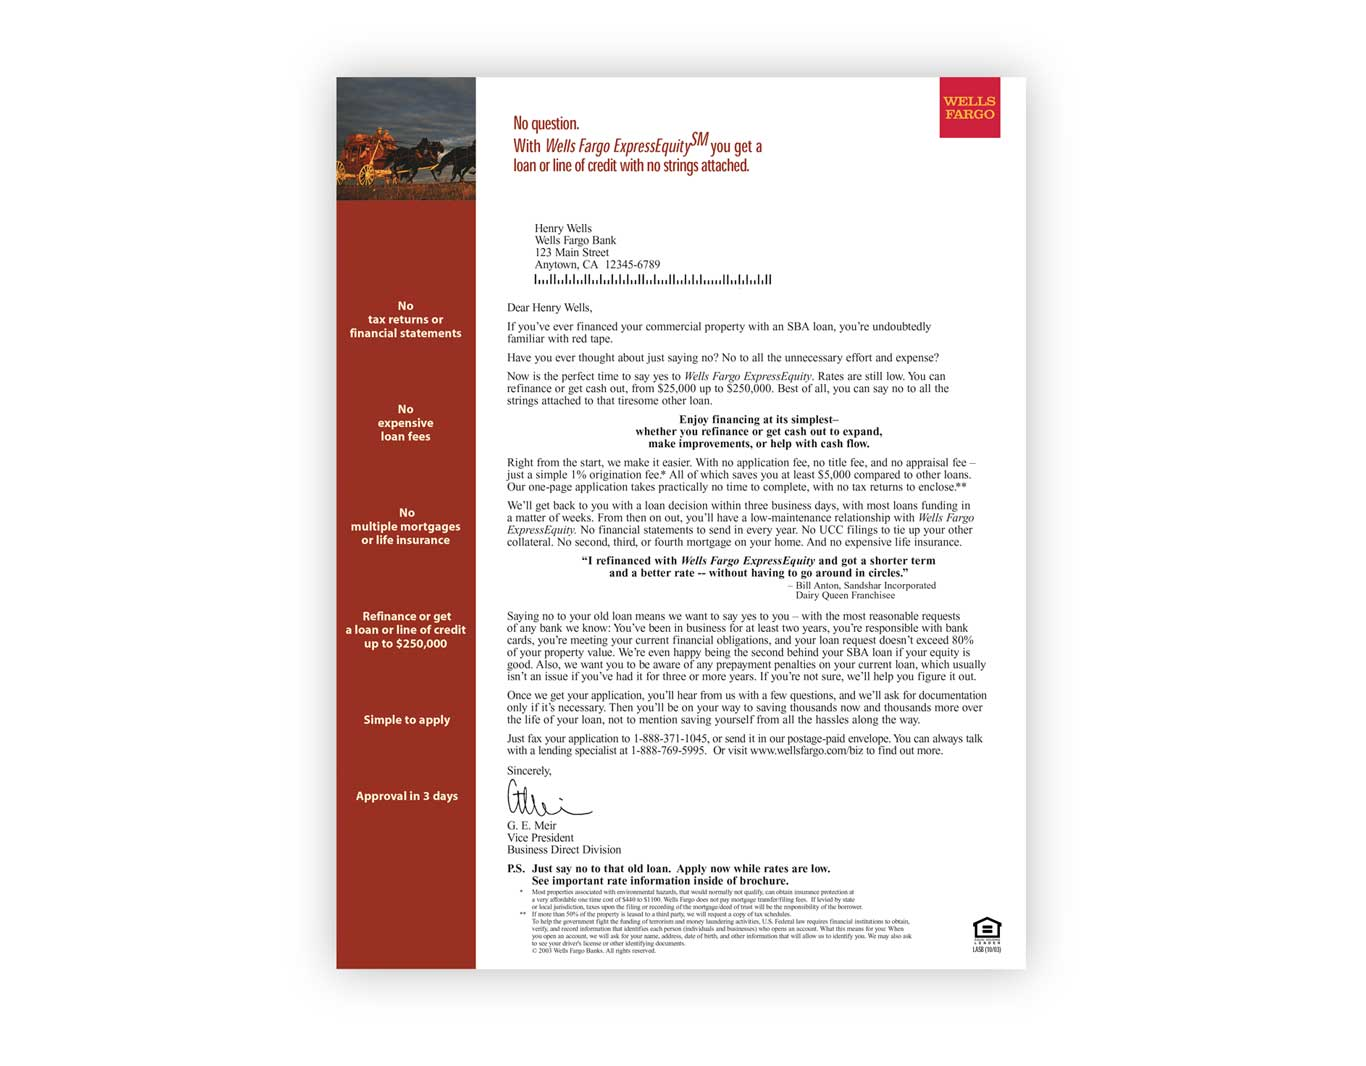 Direct Response- Wells Fargo